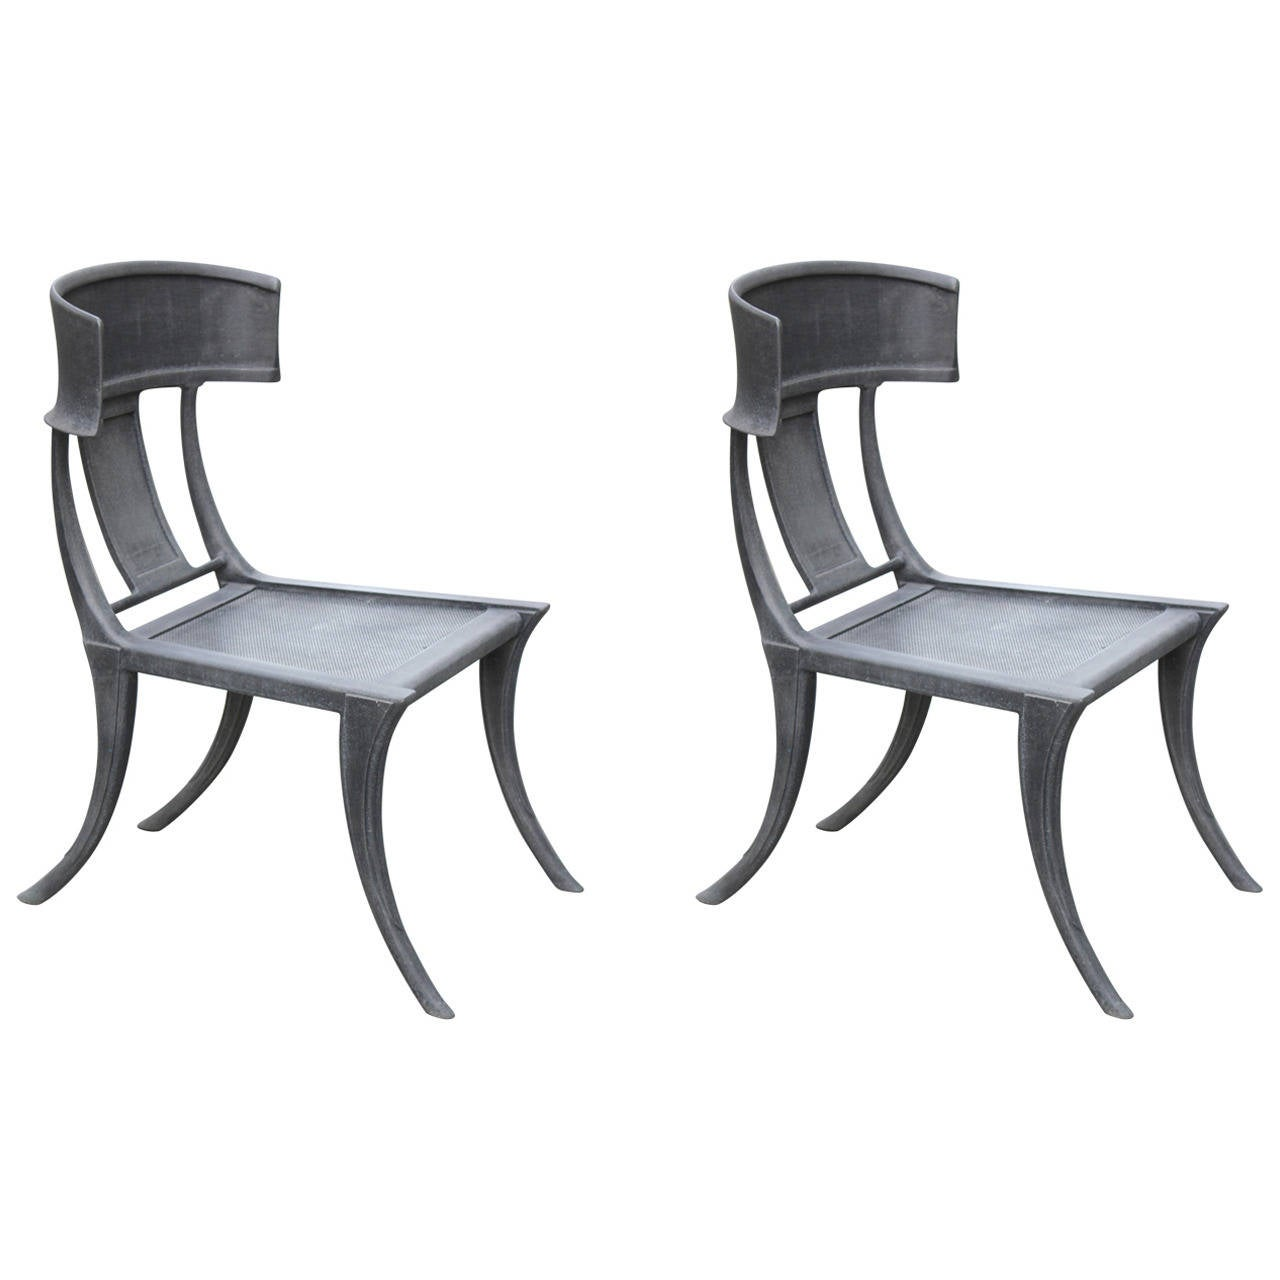 Klismos chair drawing - Pair Of Michael Taylor Cast Aluminum Klismos Chairs 1